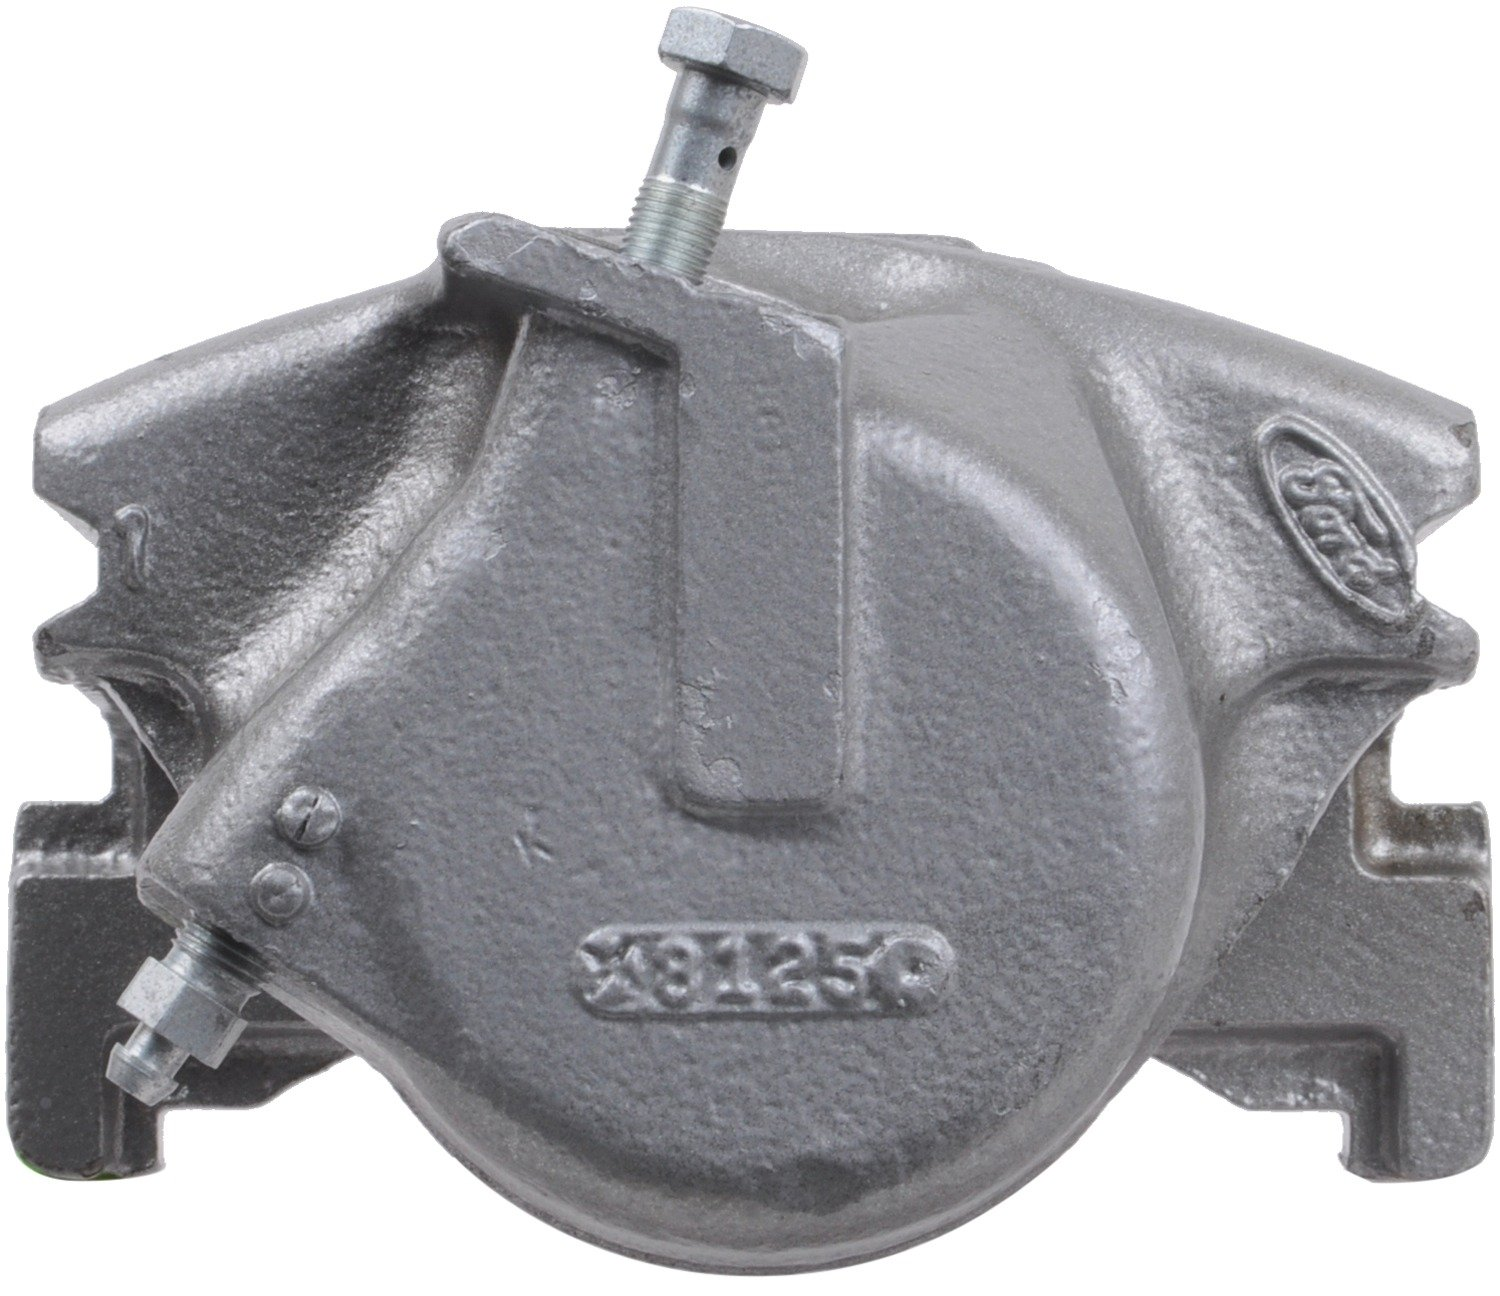 A1 Cardone 18-P4255 Ultra Premium Caliper (Remanufactured Ford Truck 93-86 F/R)